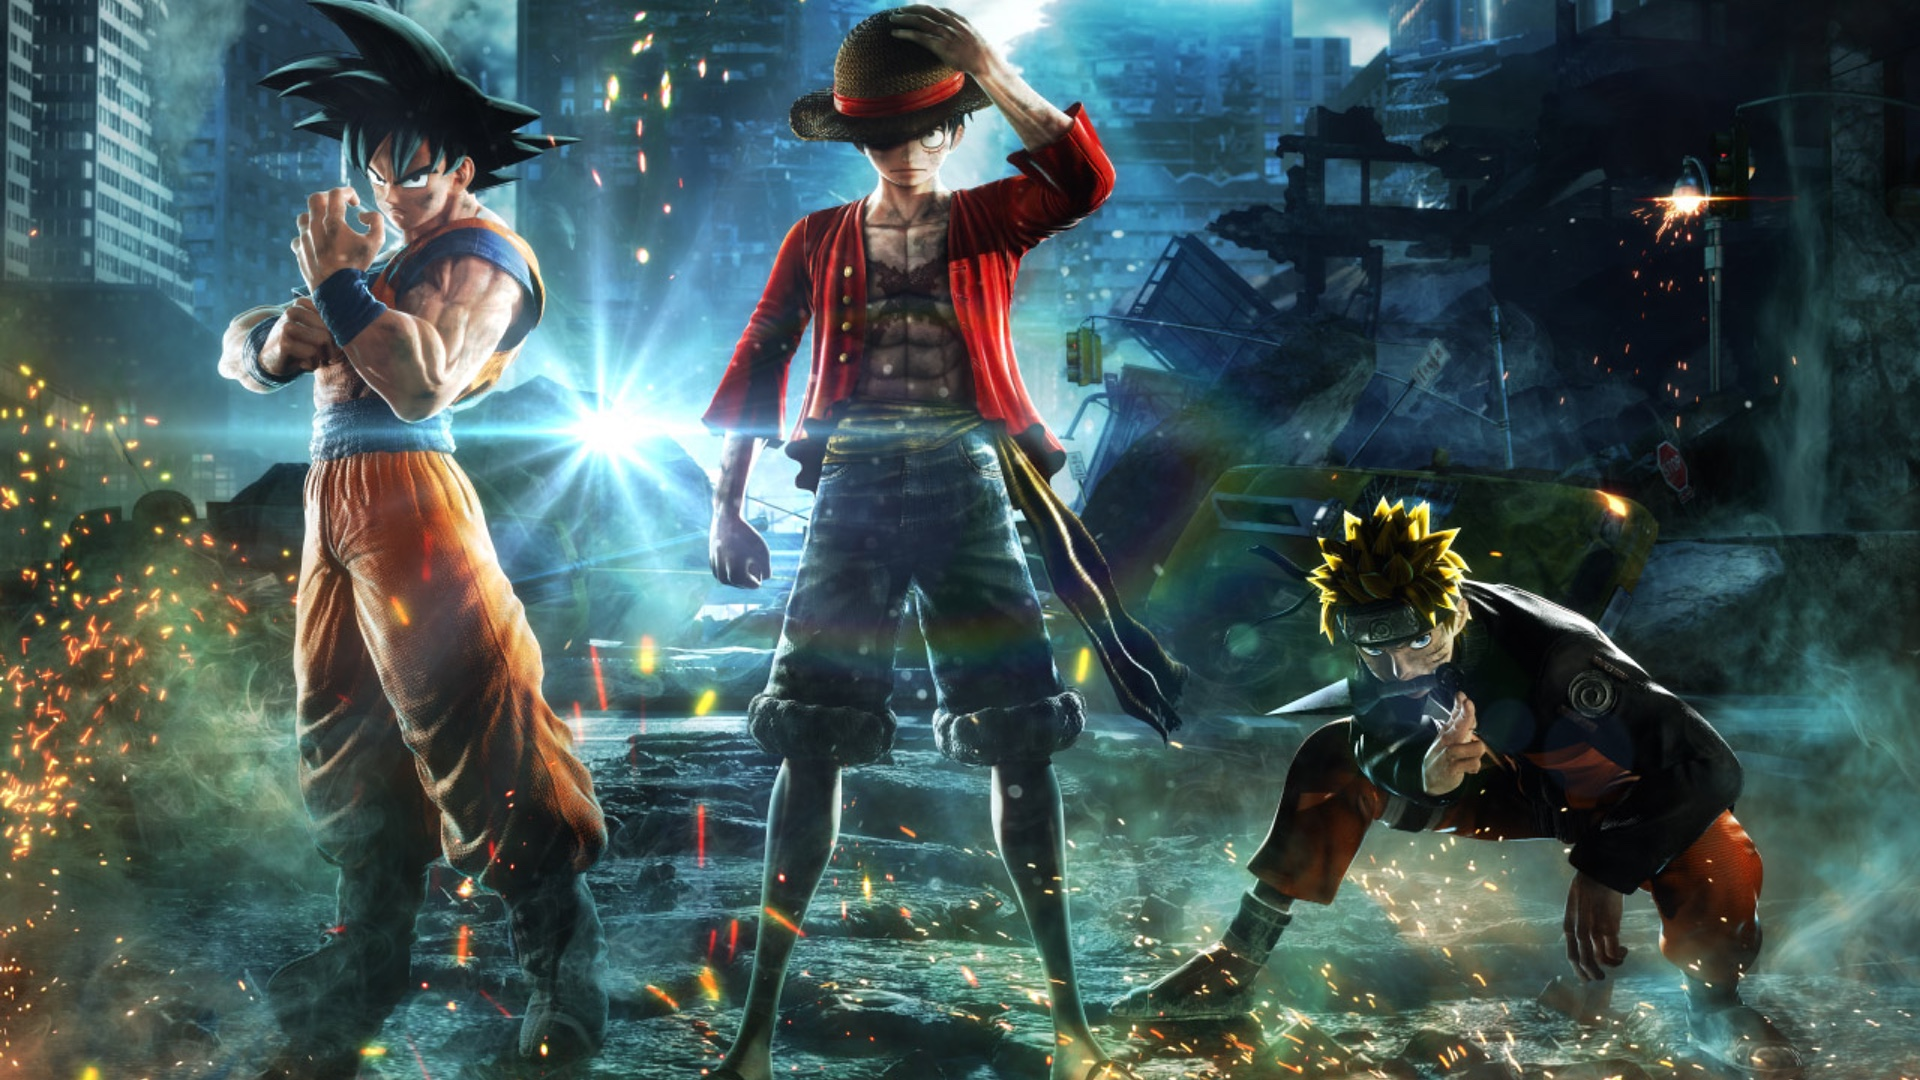 Naruto Goku Luffy And More Anime Characters Team Up In Crazy